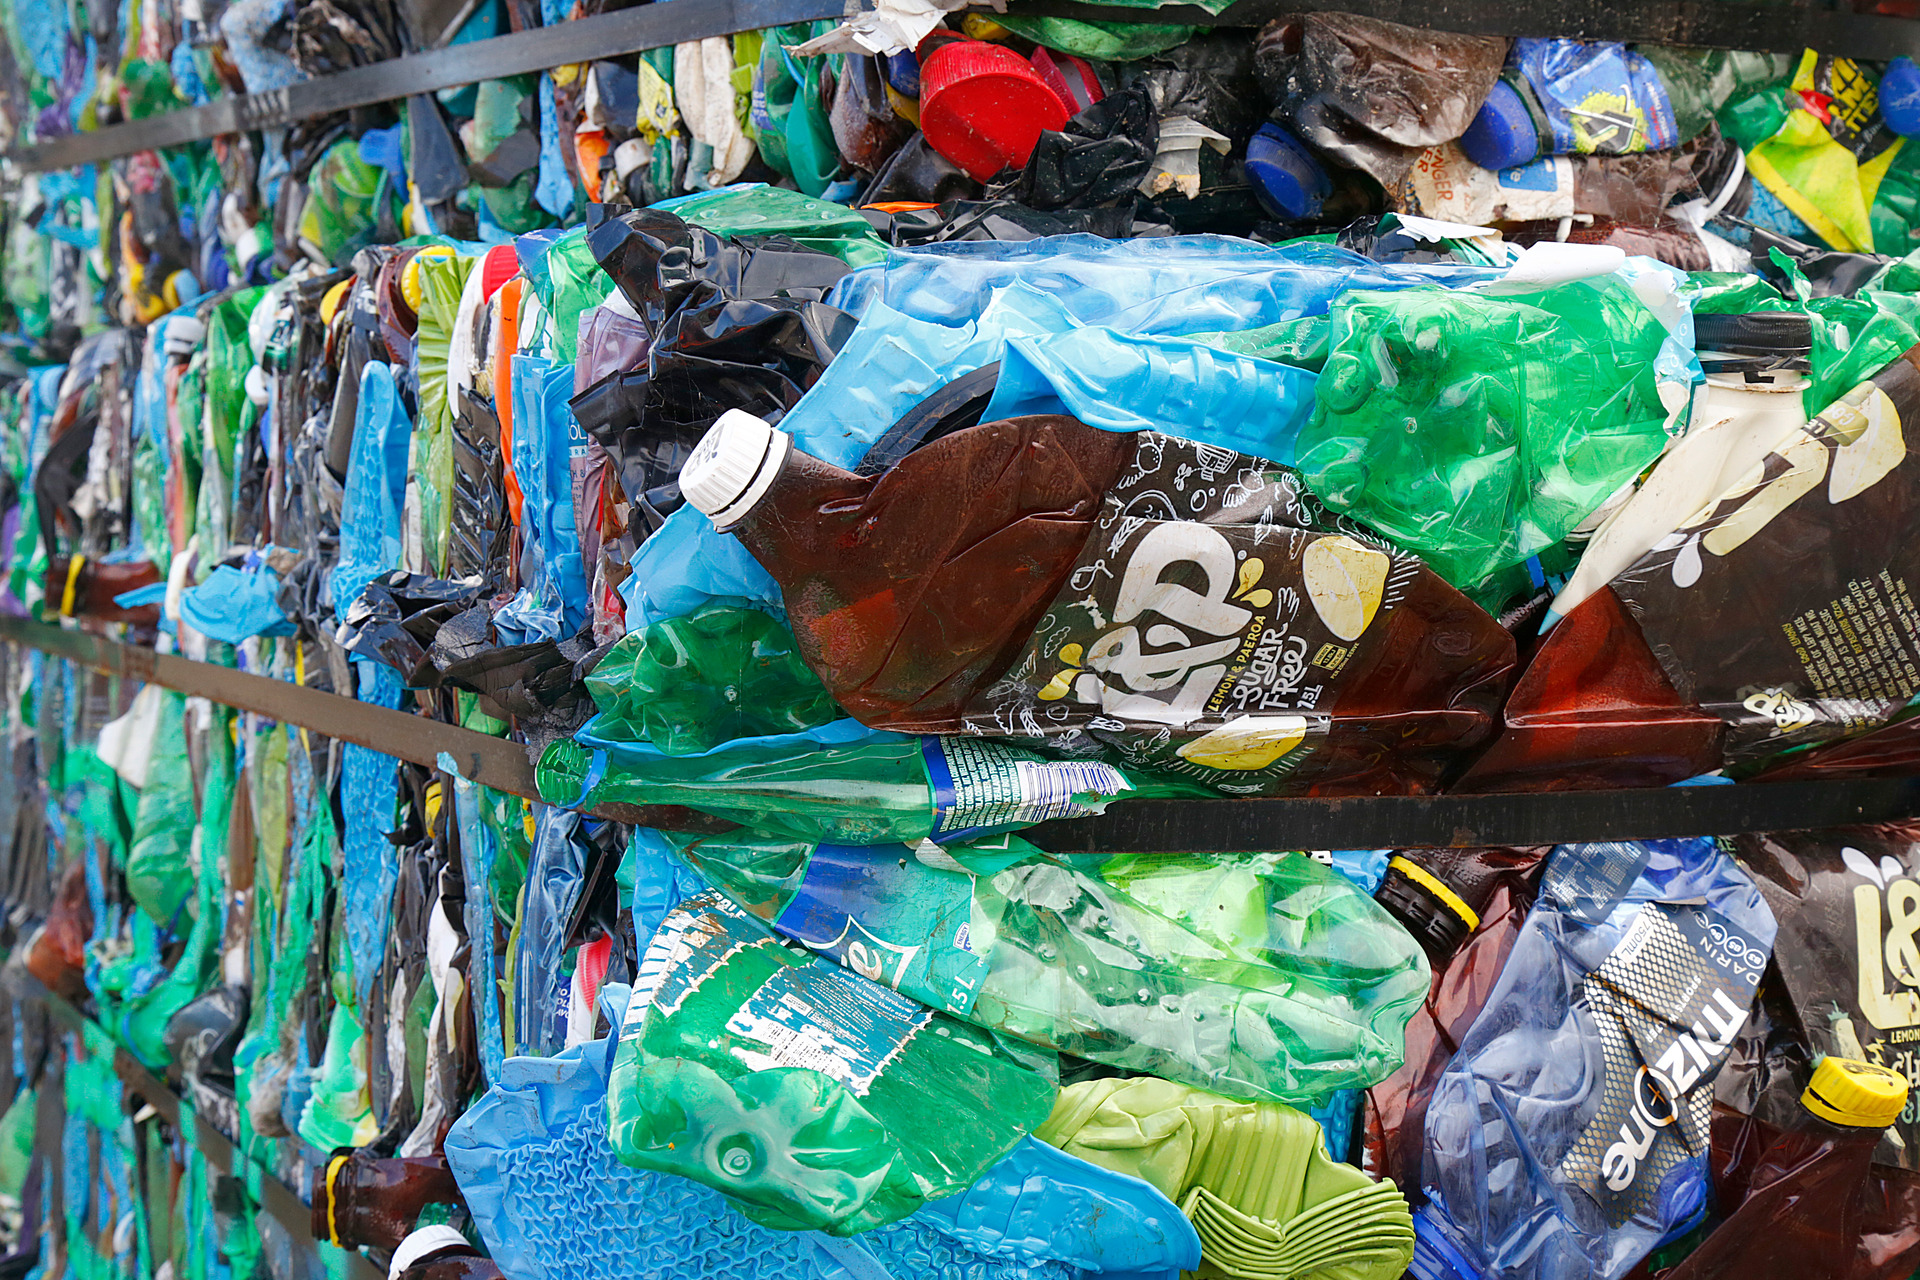 NZ's recycling crisis after China ban: 'This situation is not